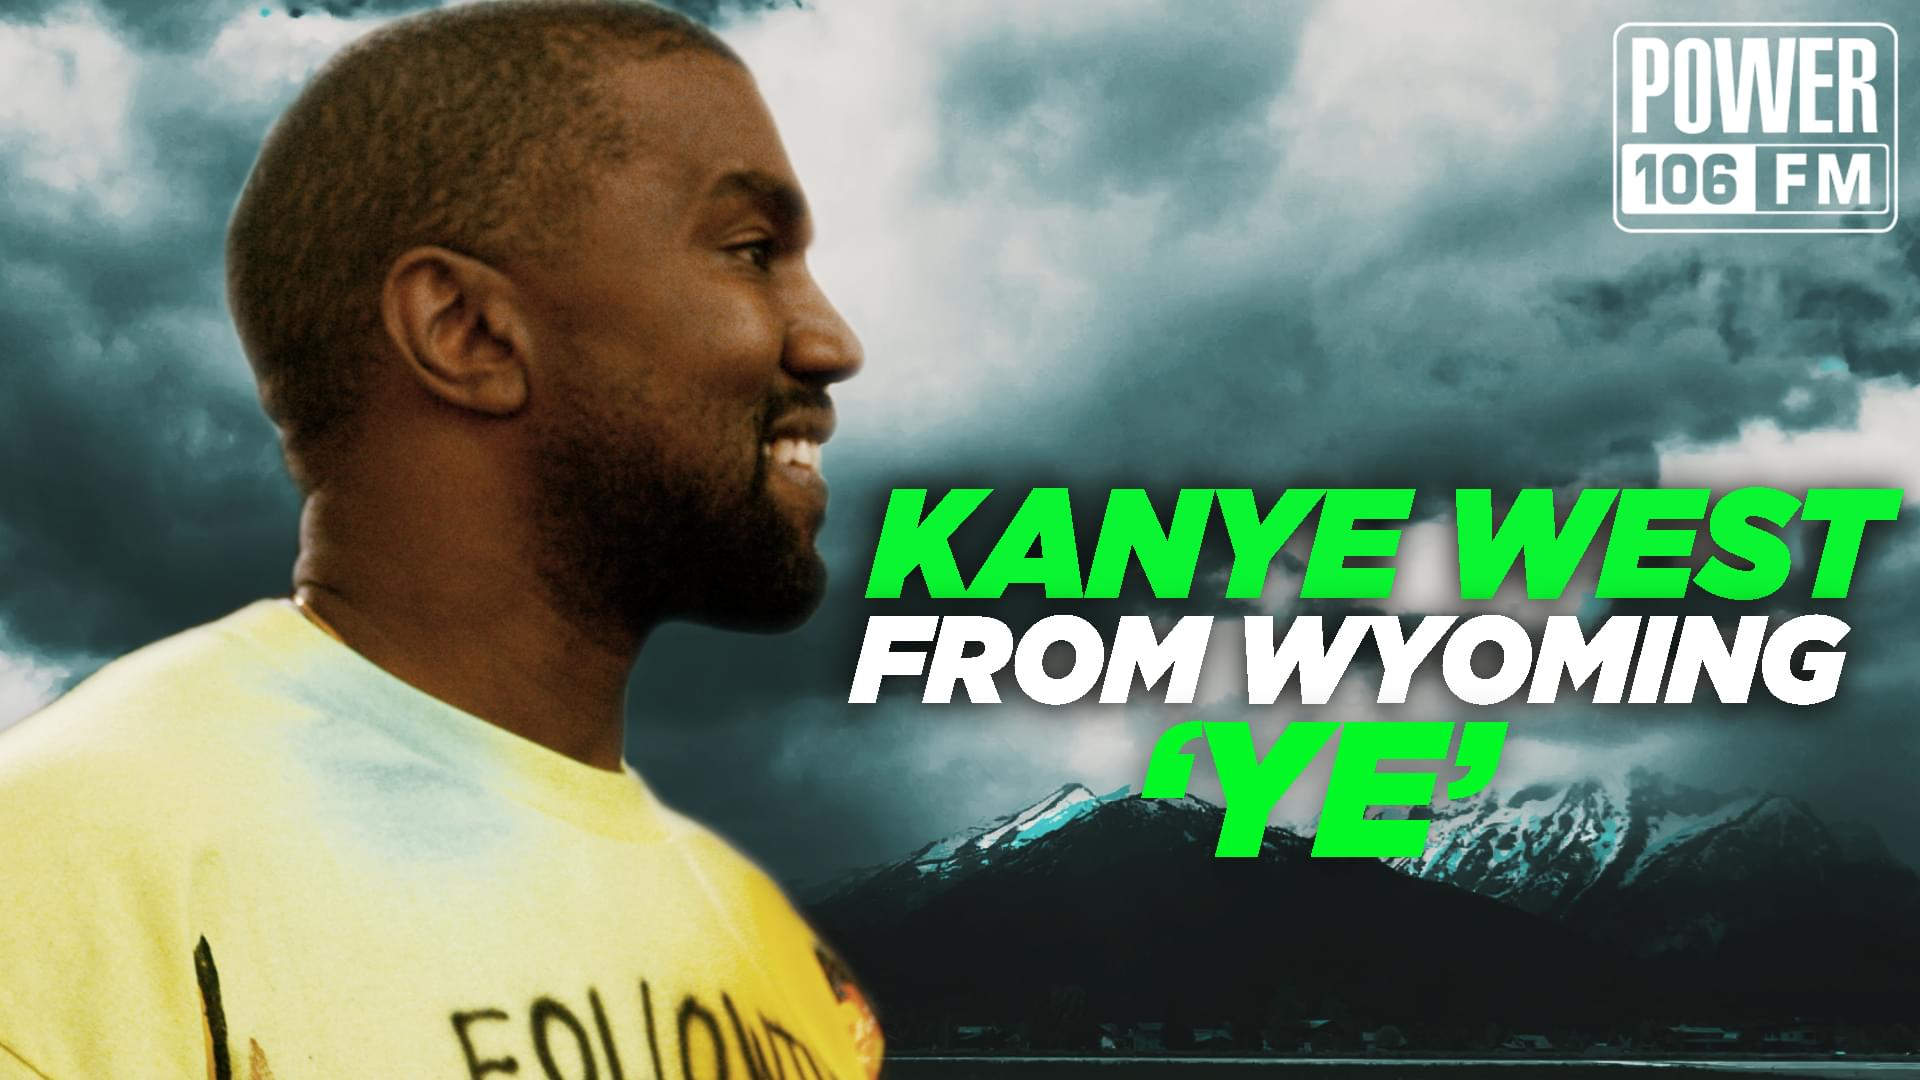 Kanye West On Redoing The Album 'YE' After TMZ Interview, Future Projects + Family Love [WATCH]